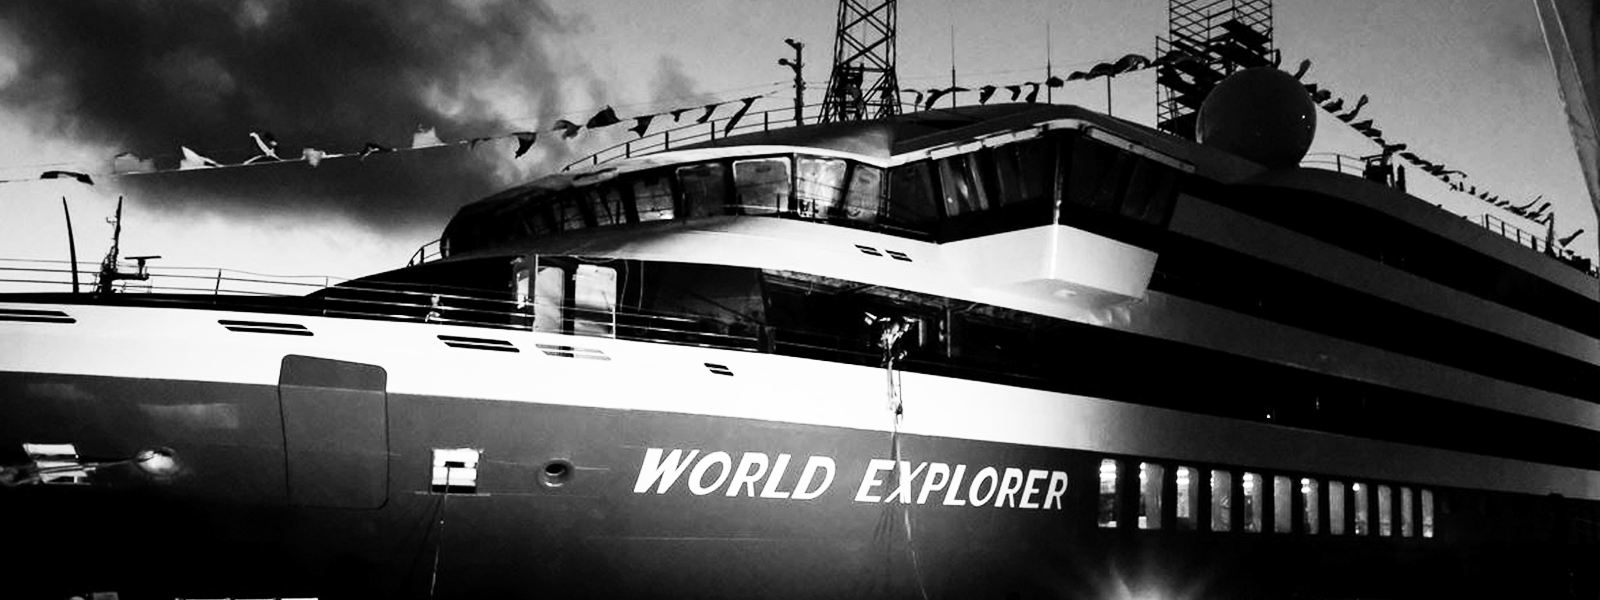 MS WORLD EXPLORER CONSTRUCTION